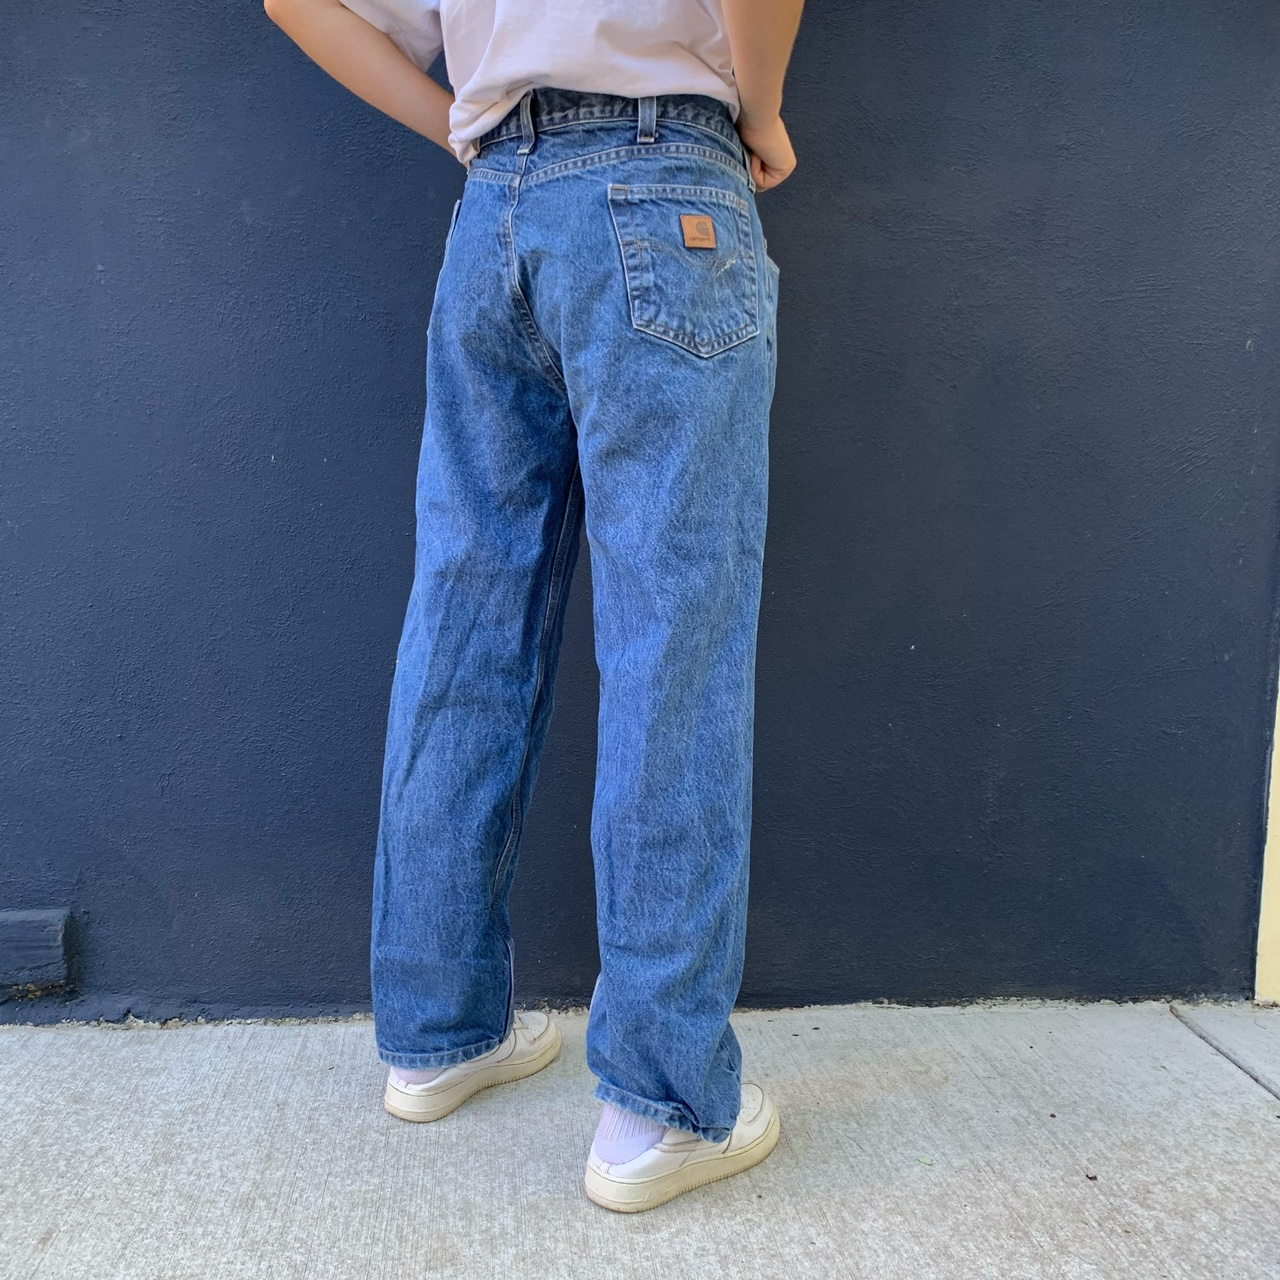 Product Image 1 - Super nice Carhartt jeans!! These